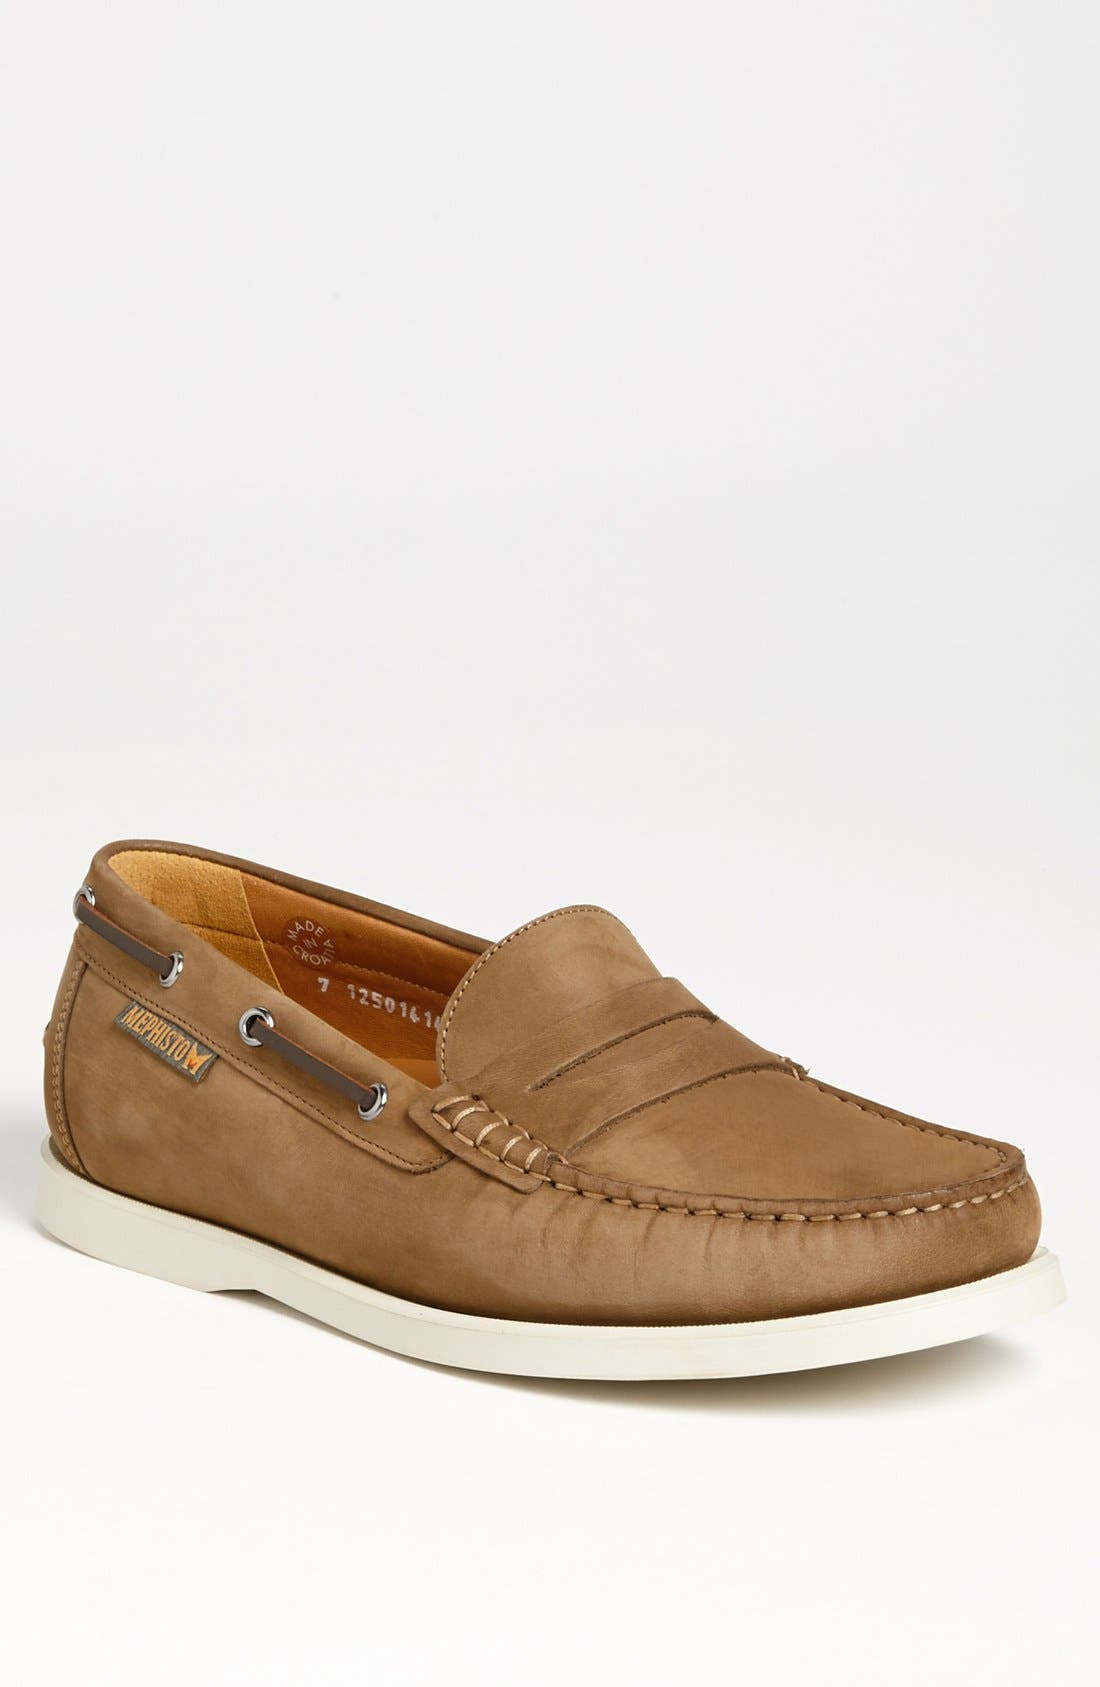 Alternate Image 1 Selected - Mephisto 'Captain' Boat Shoe